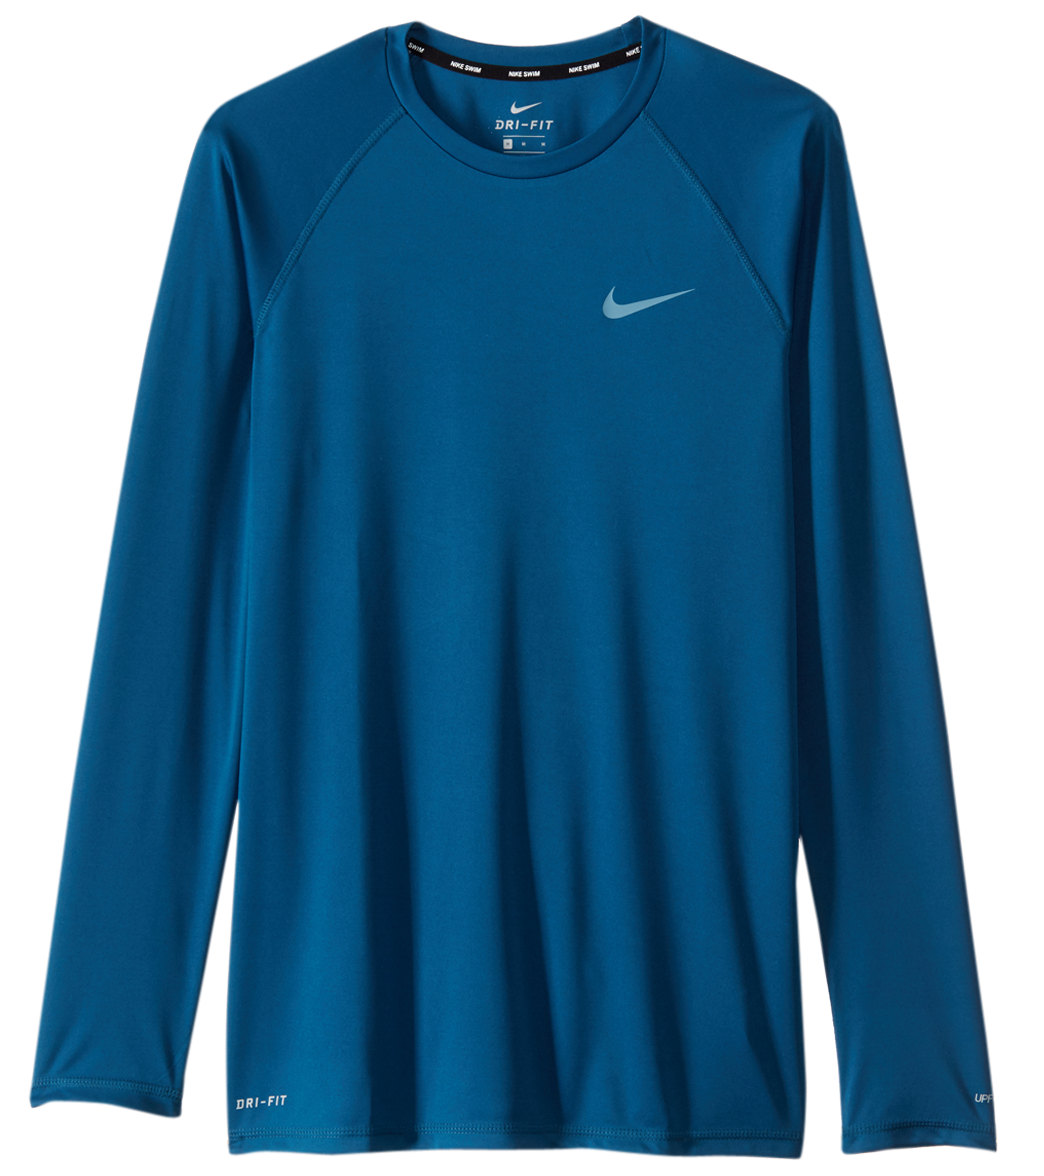 7d7df4f2b4e5 Nike Men s Dri-FIT L S Hydroguard at SwimOutlet.com